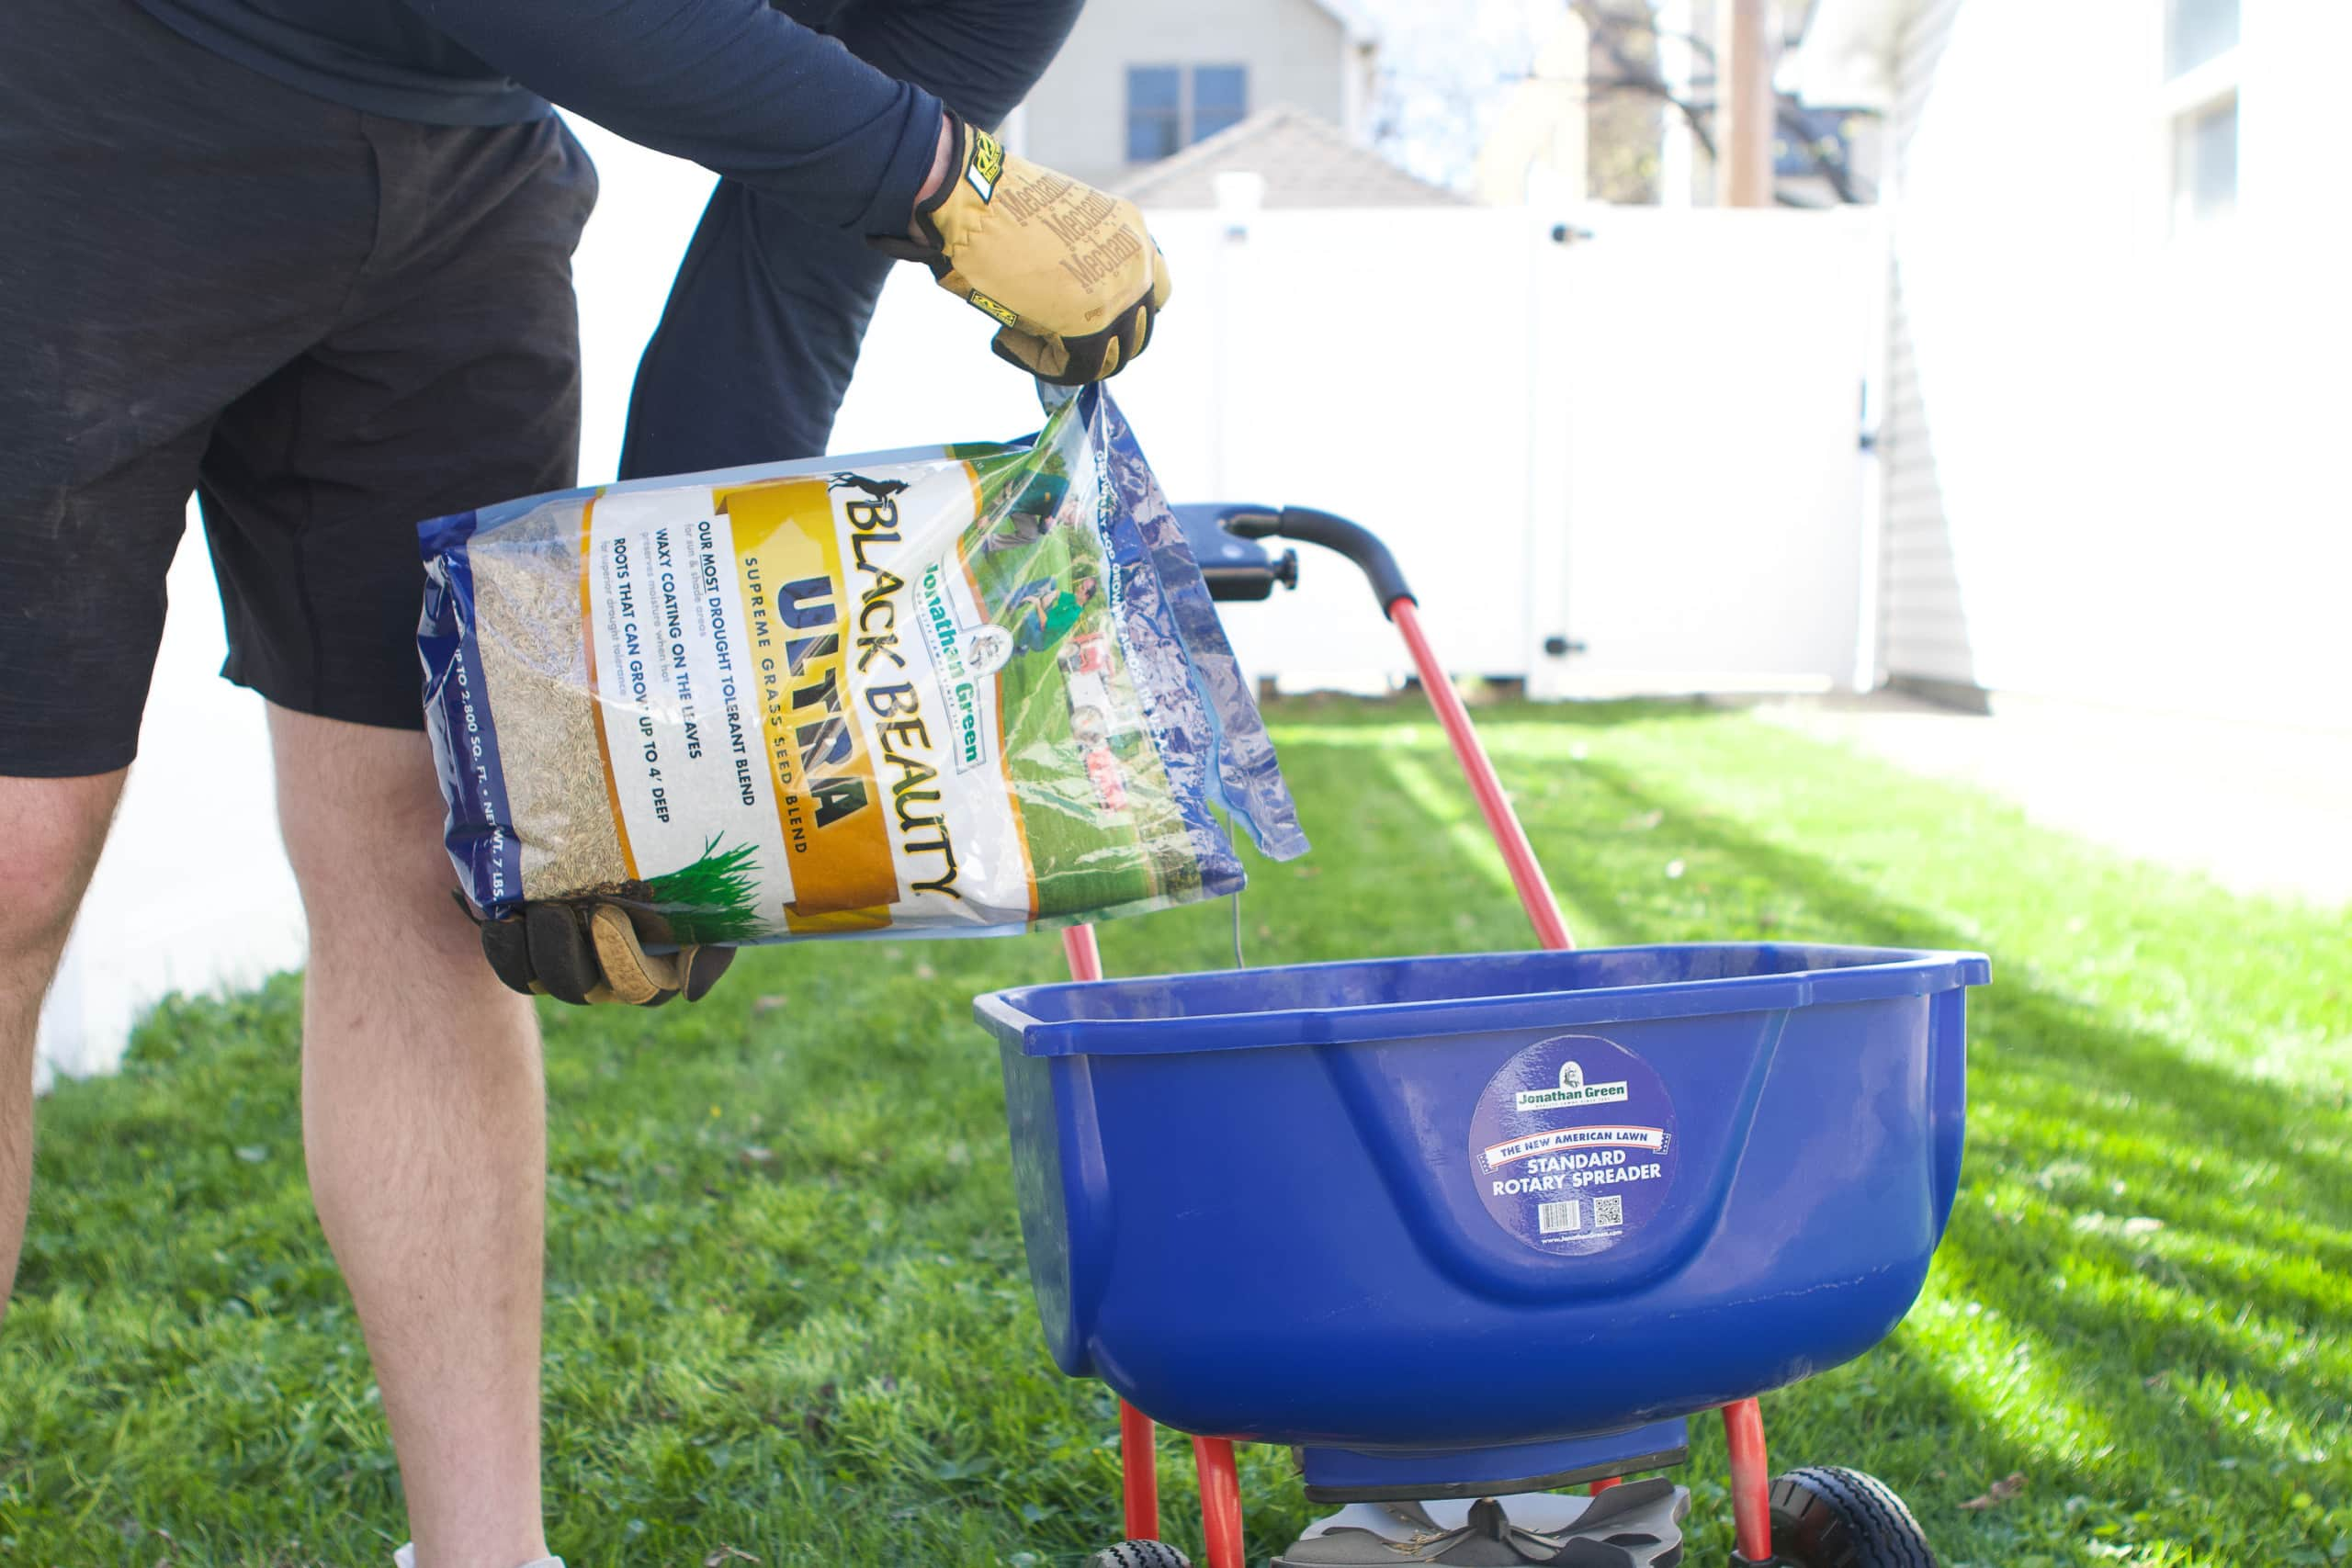 When you prep your lawn for spring, make sure you use grass seed